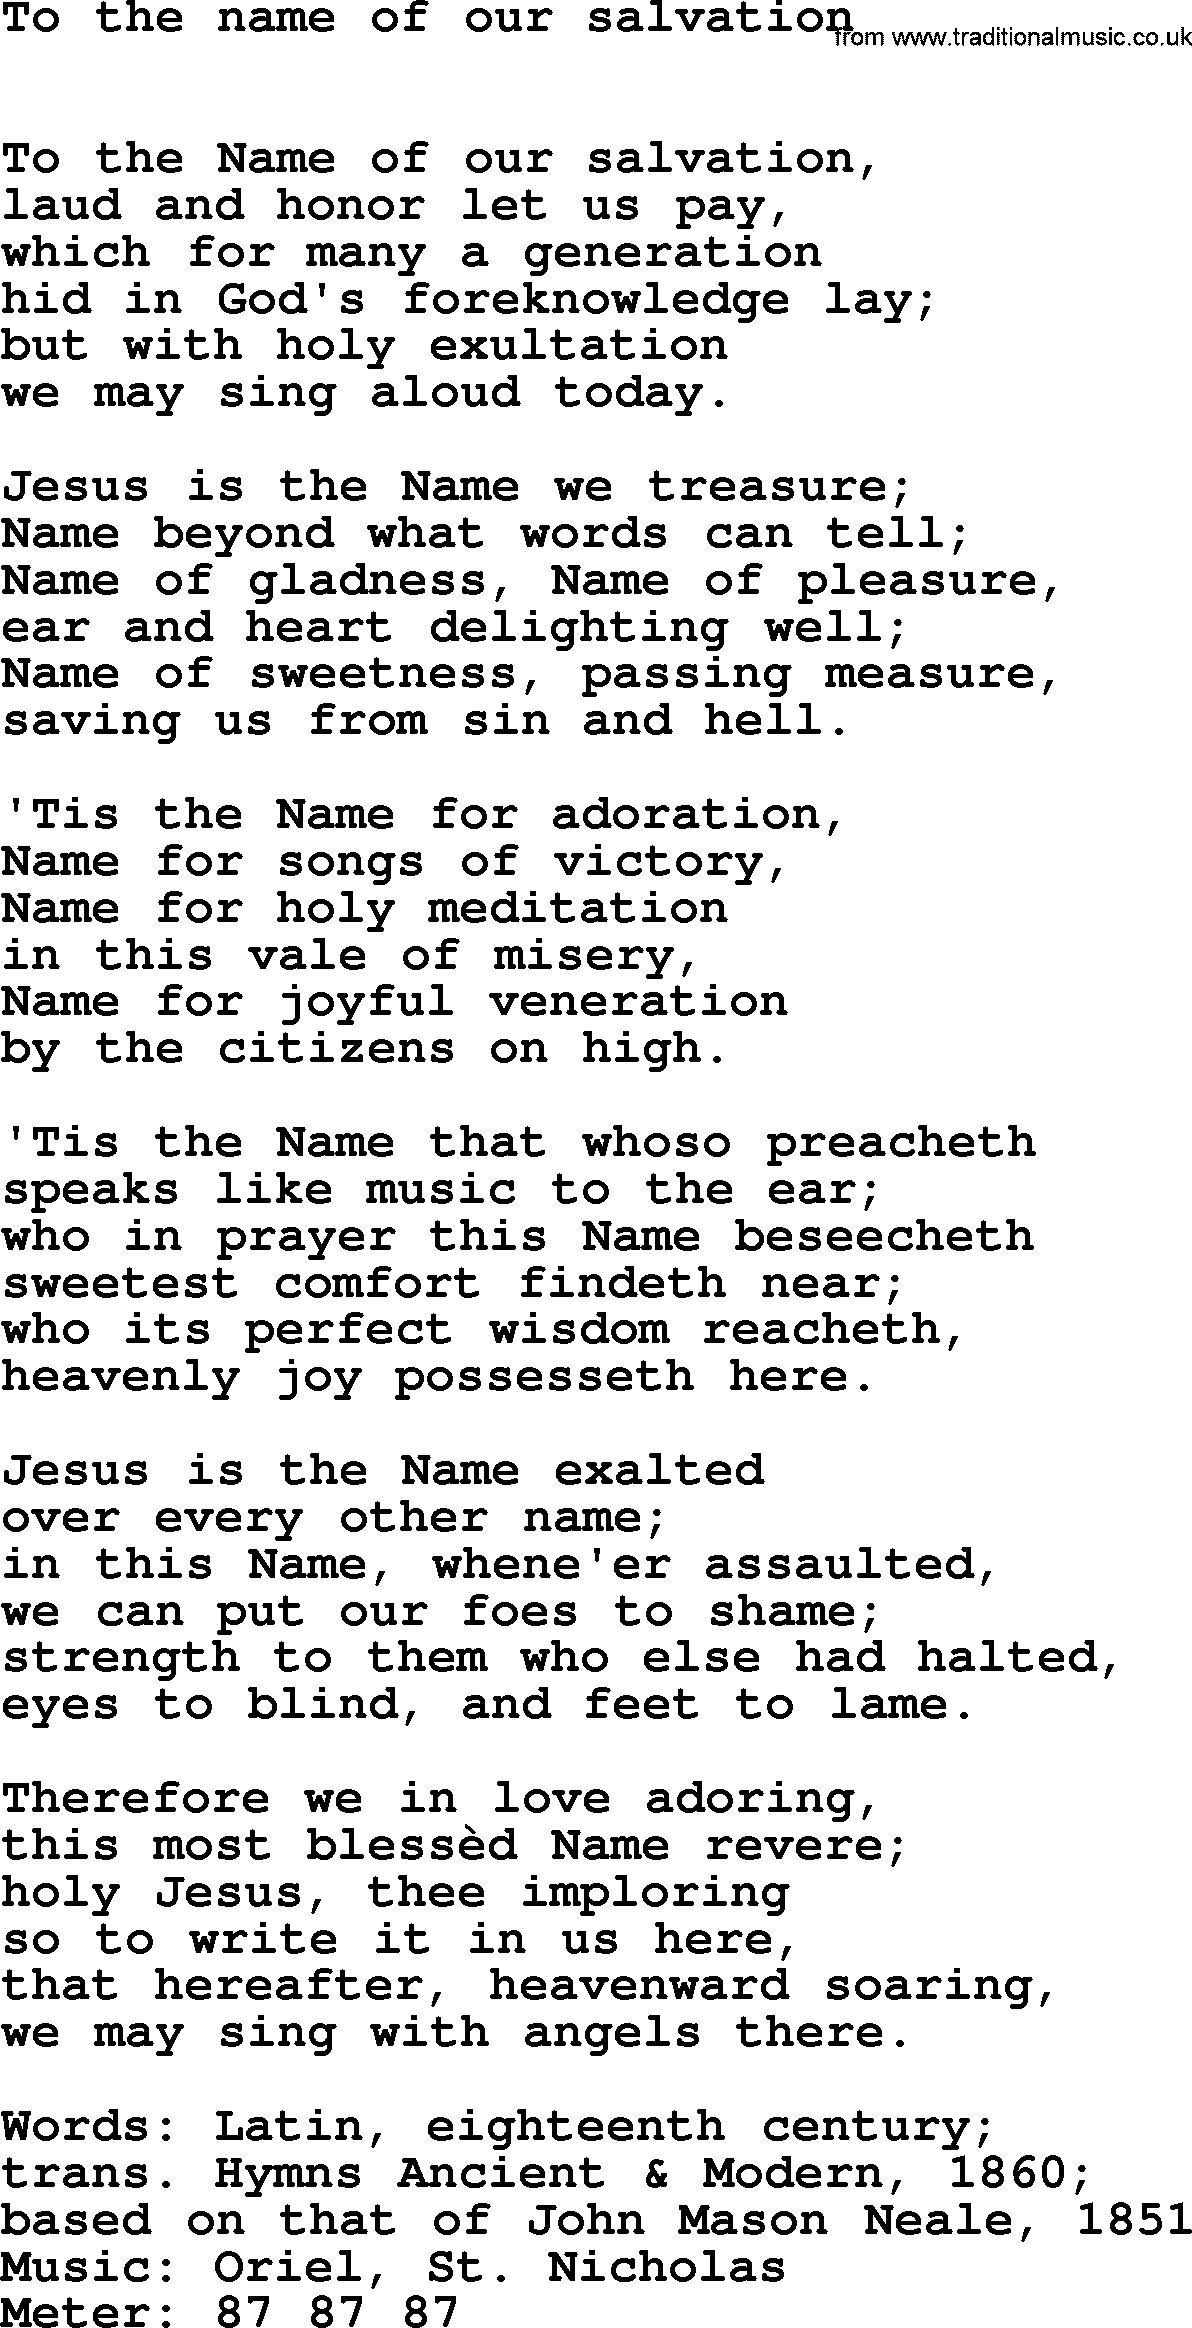 Book of Common Praise Song: To The Name Of Our Salvation